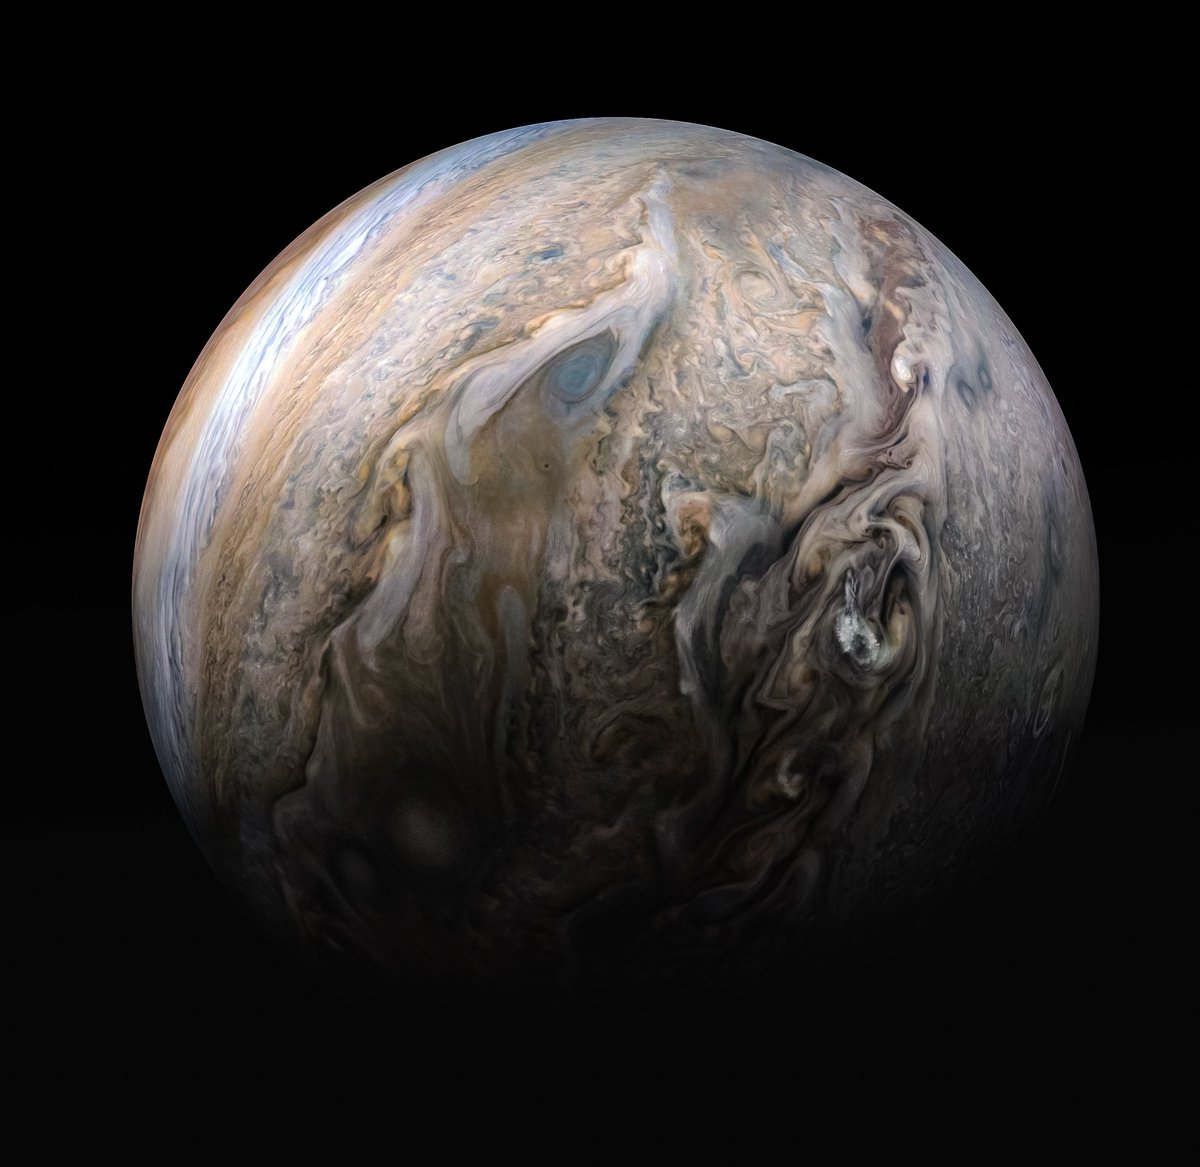 A little cloud watching is always fun. What do you see? A blue-eyed dragon? Coffee creamer? One thing's for sure: my team sees lots of science. I captured this stunning view of Jupiter's stormy northern hemisphere last month. Details: https://www.missionjuno.swri.edu/news/tumultuous_clouds_of_jupiter…